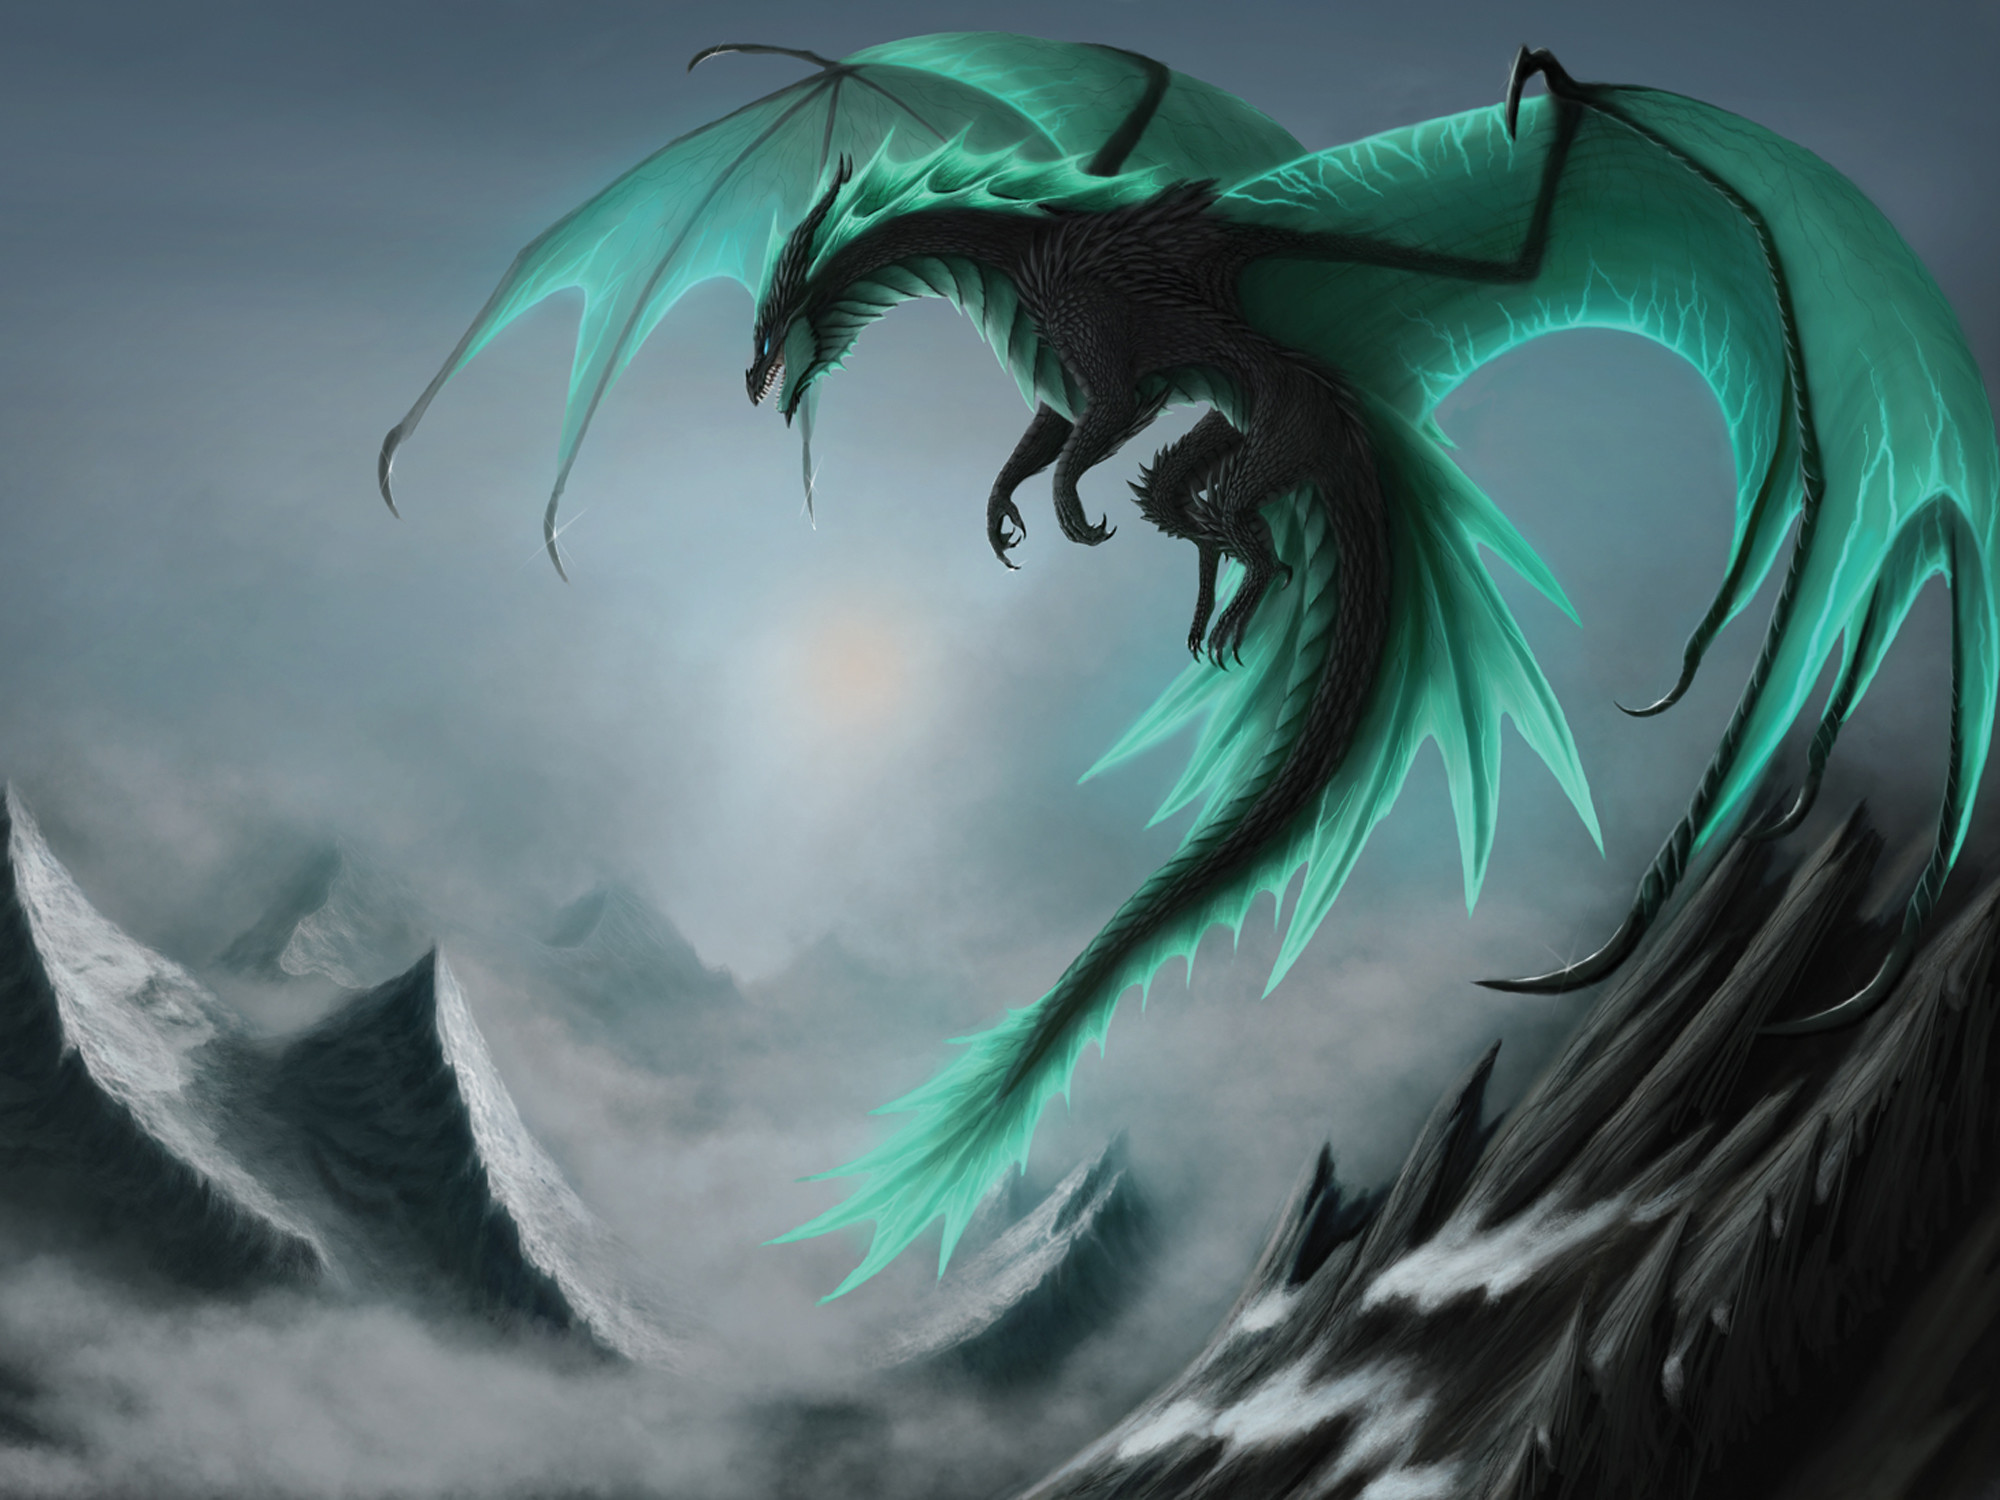 2000x1500 Dragons Wings Fantasy dragon wallpaper |  | 117286 | WallpaperUP